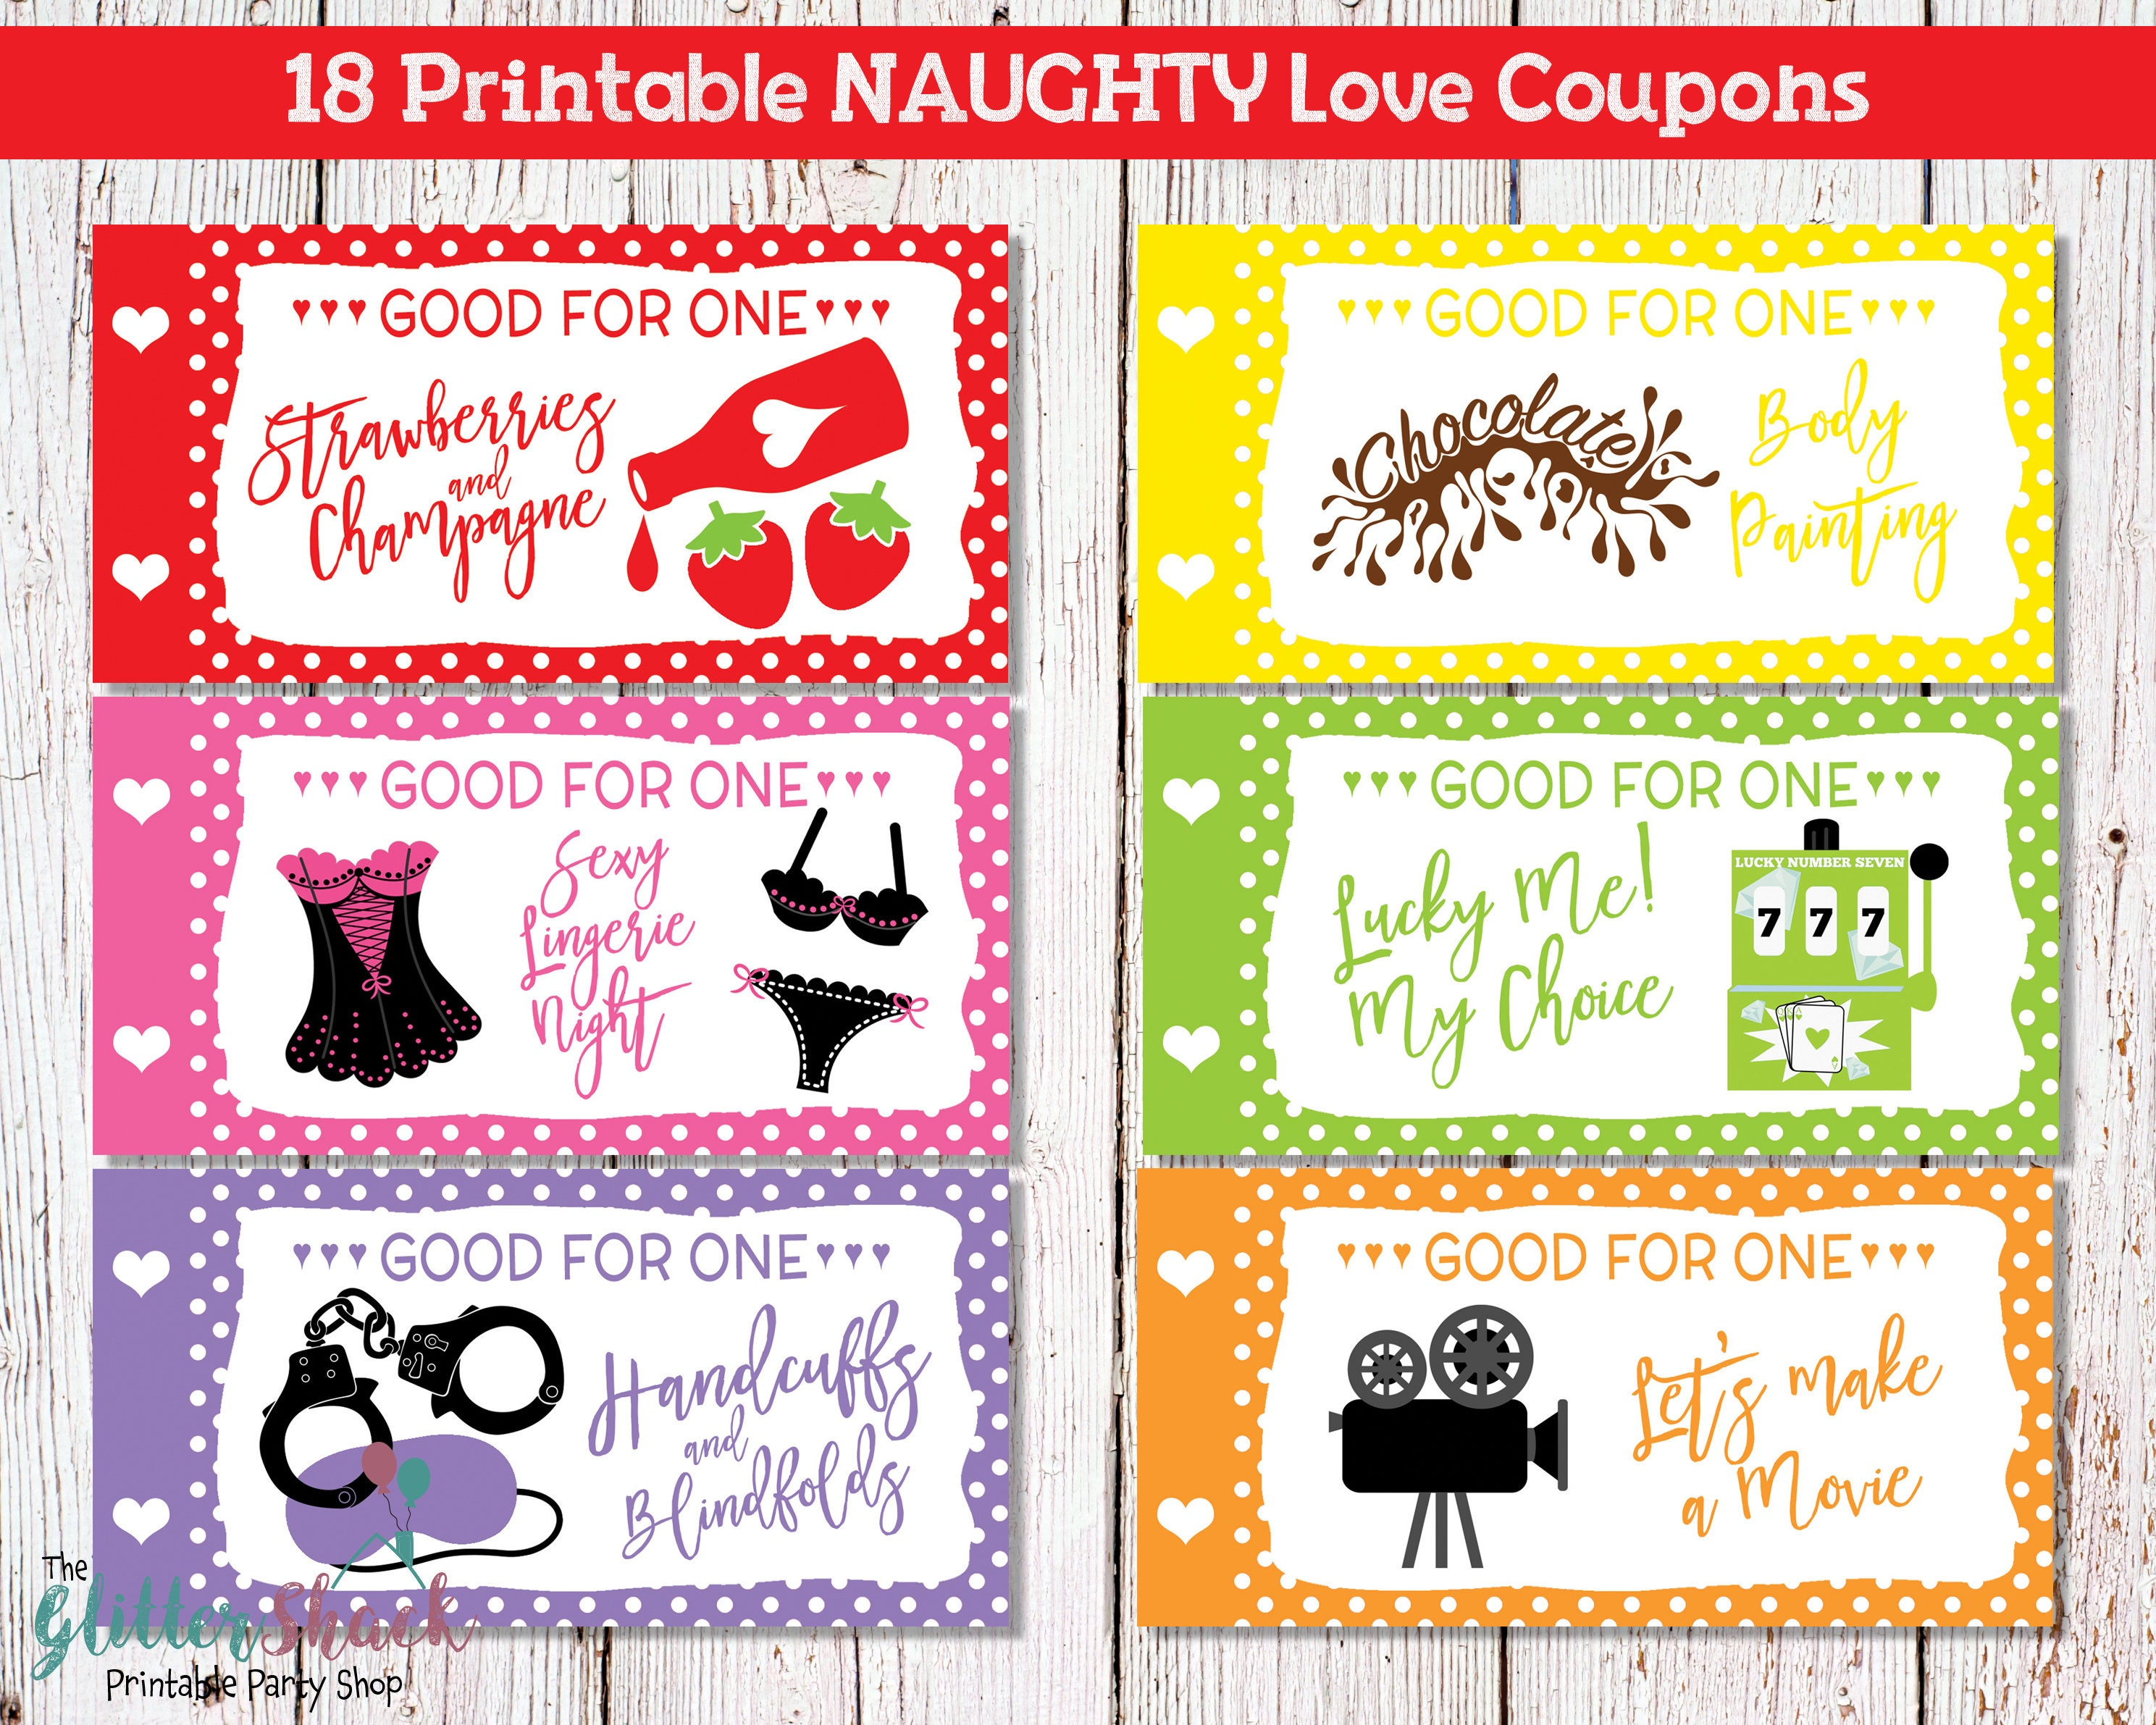 Cute love coupons for her